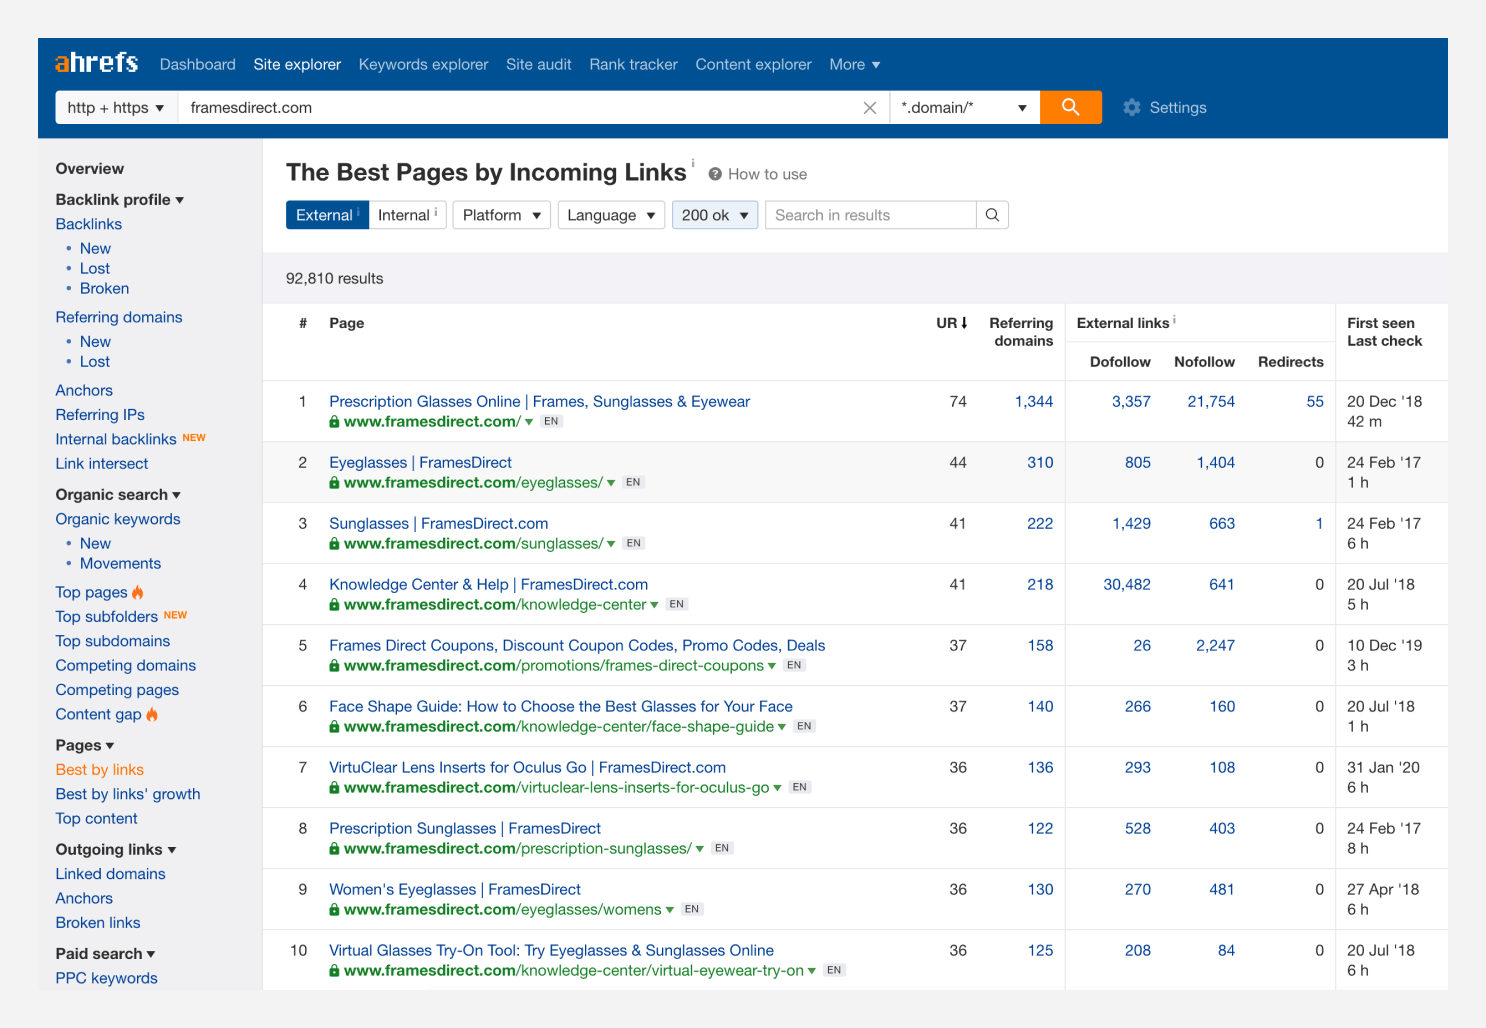 Screenshot of Ahrefs Best by links report.